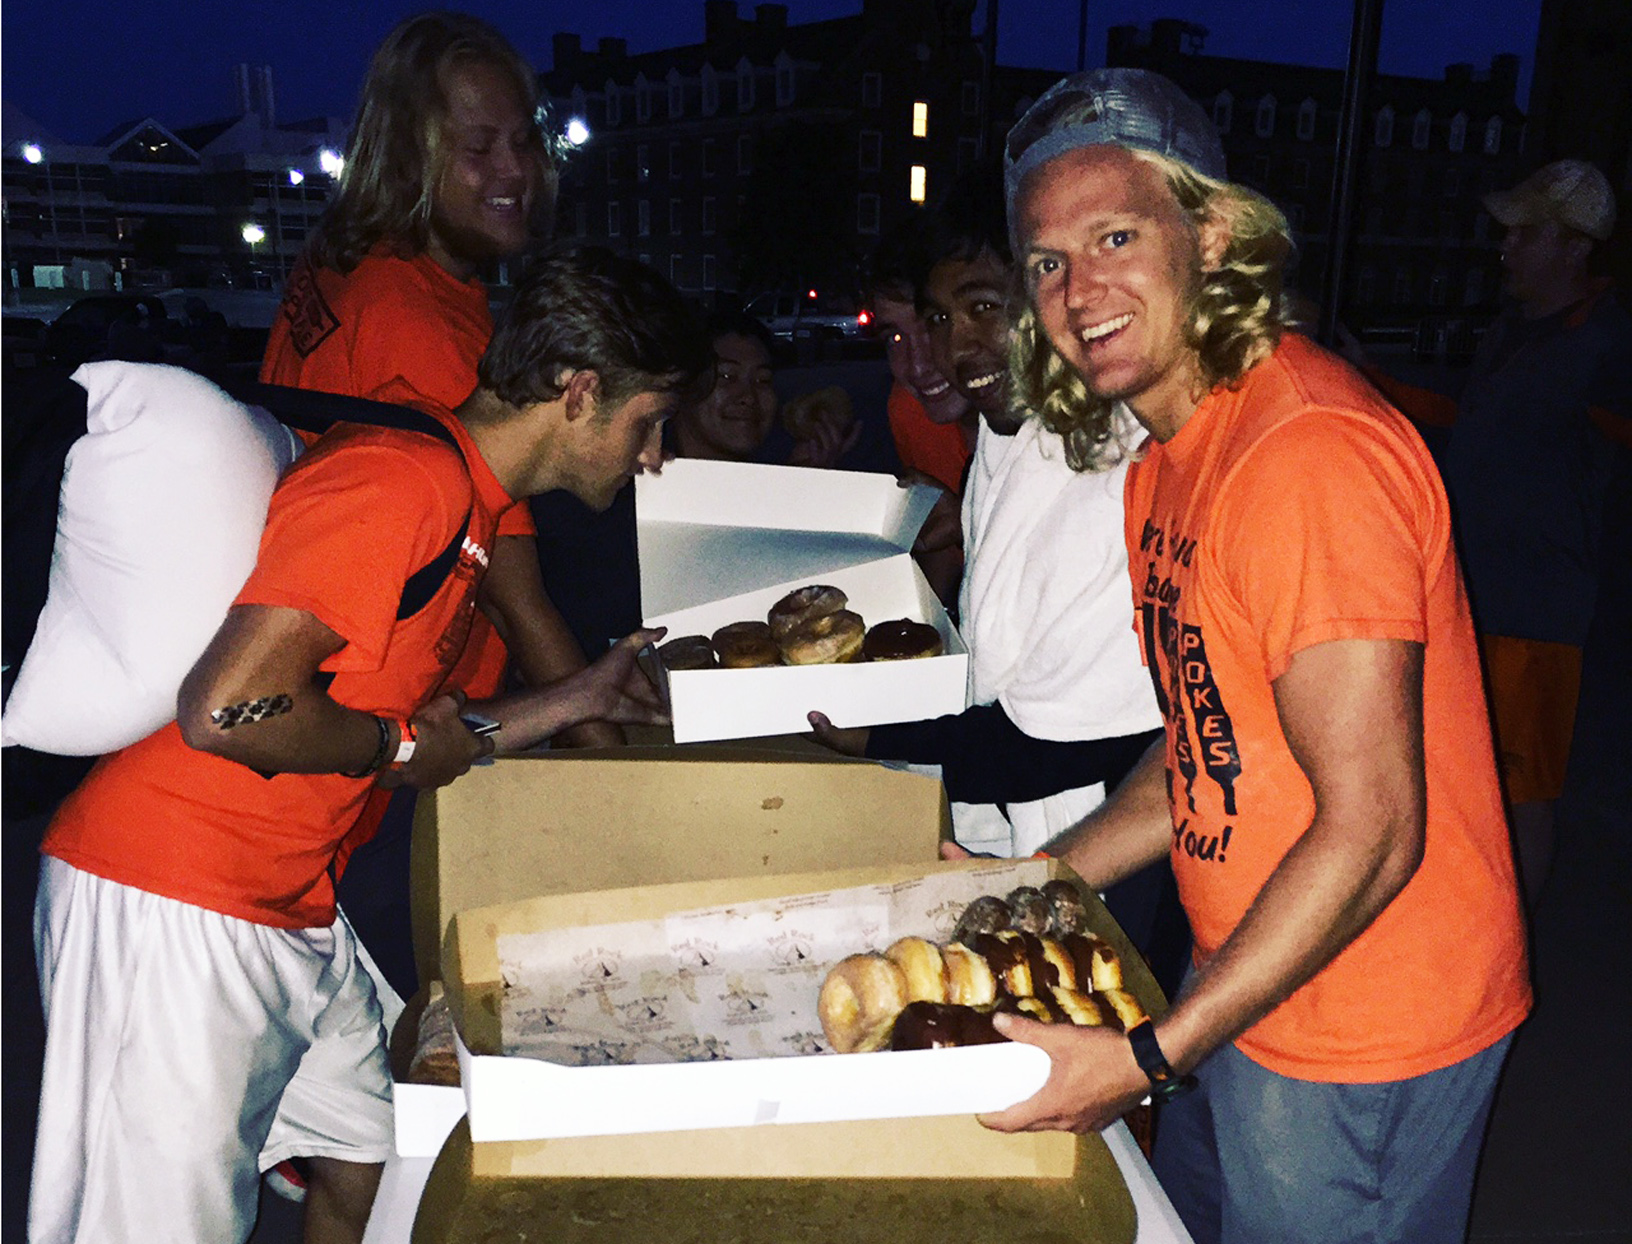 Camper Dylan Rowan gets donuts at a Rowdy campout.